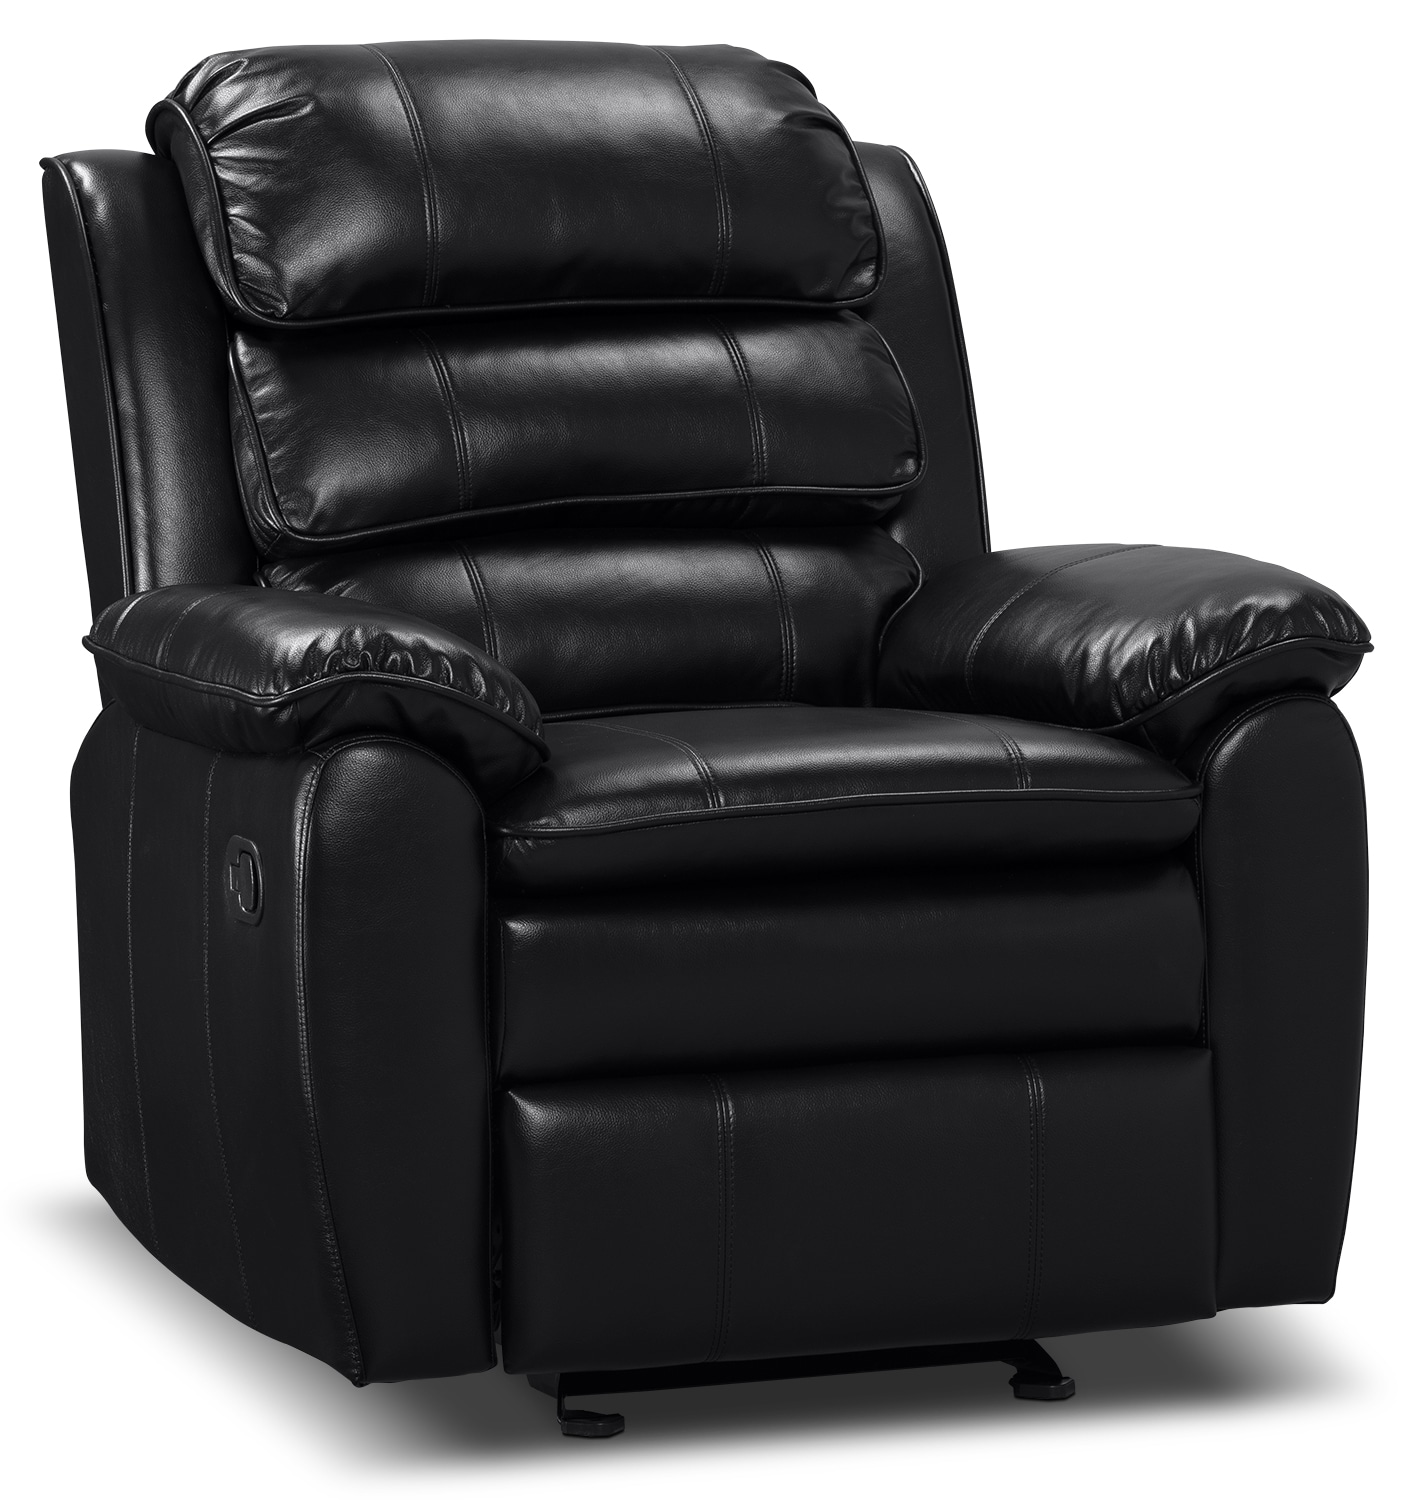 leather fabric chair adam leather look fabric reclining glider chair black 16627 | 472087